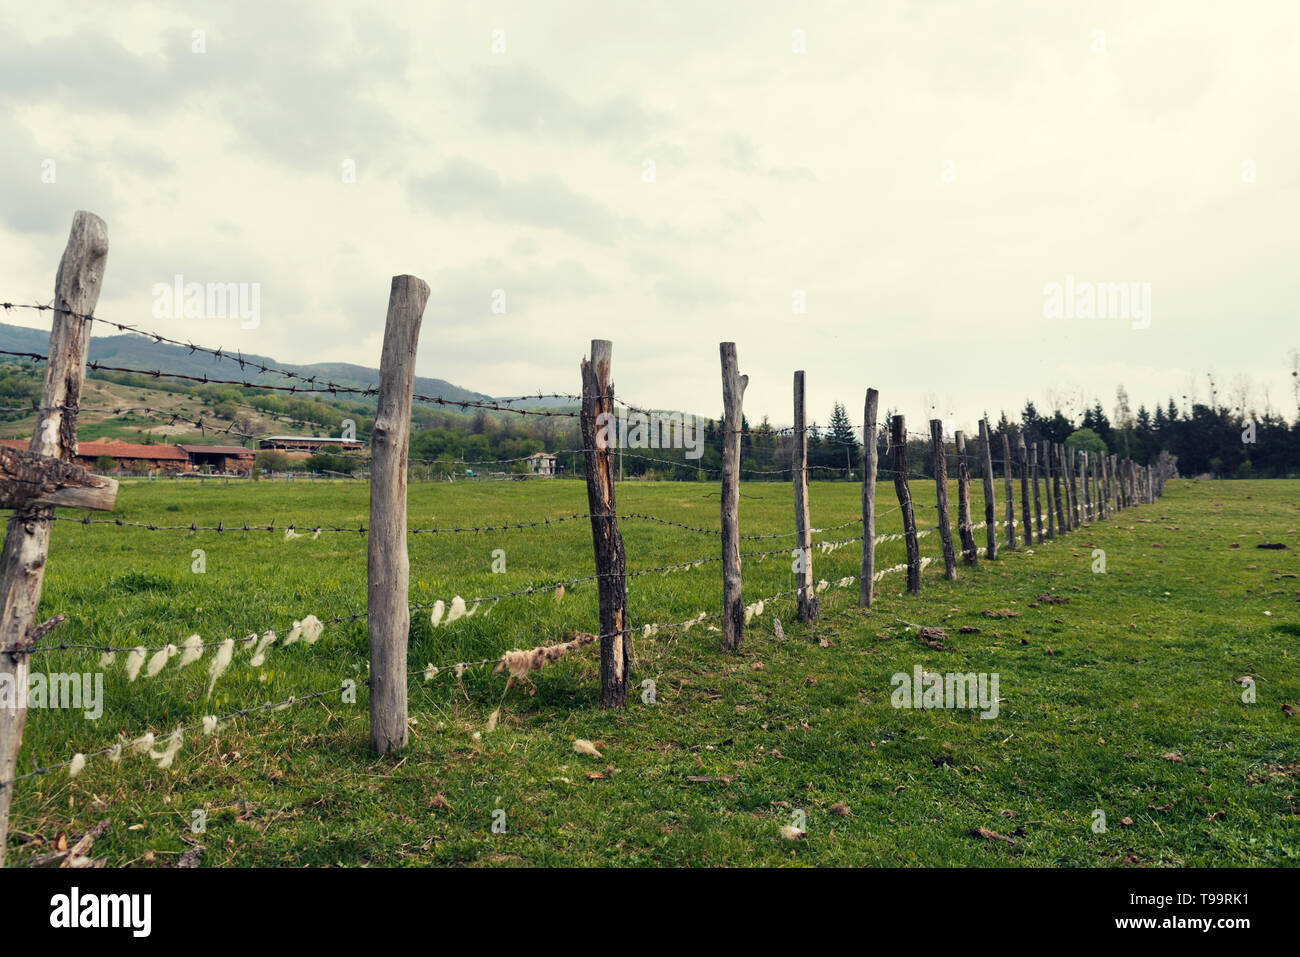 Wooden fence with barbed wire with sheep wool on it in an animal farm in the country Selective focus Stock Photo